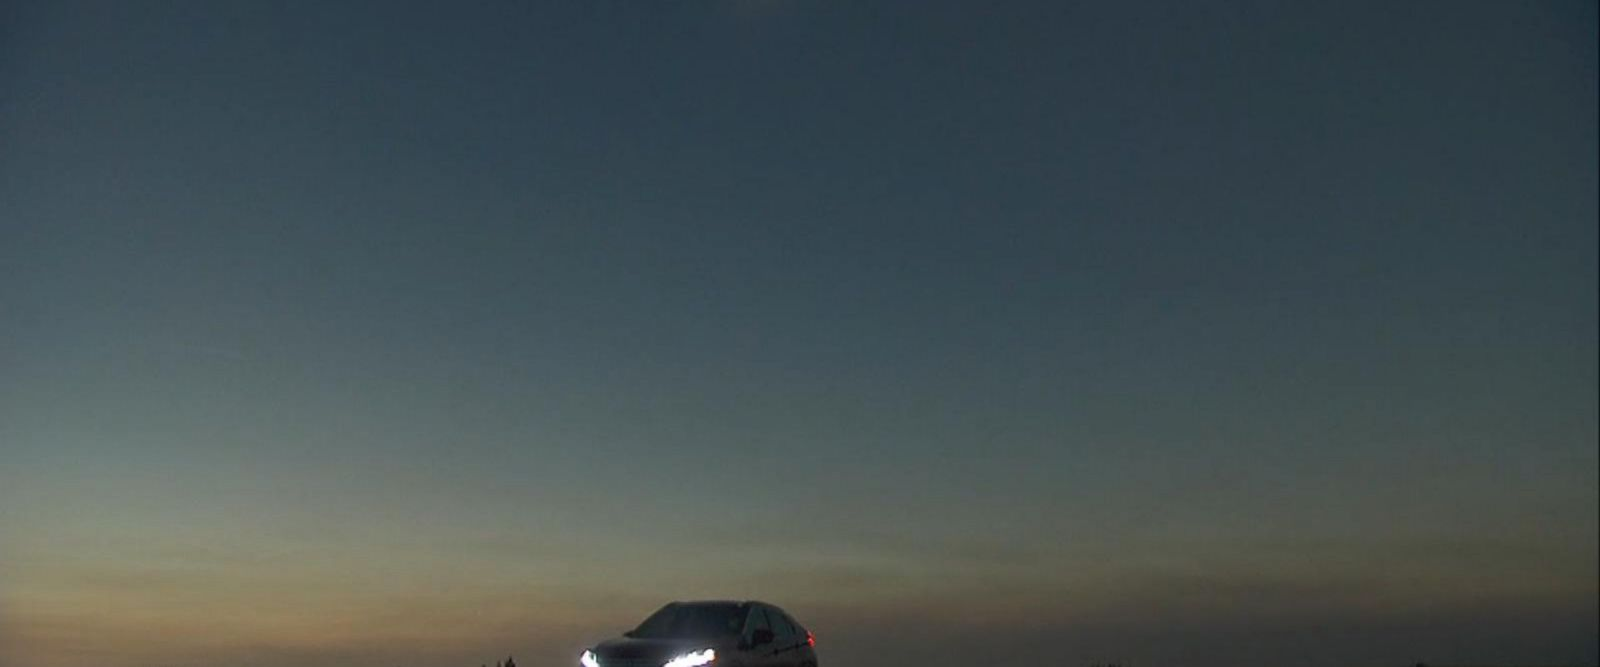 VIDEO: Behind the scenes look: Mitsubishi films Eclipse commercial during solar eclipse